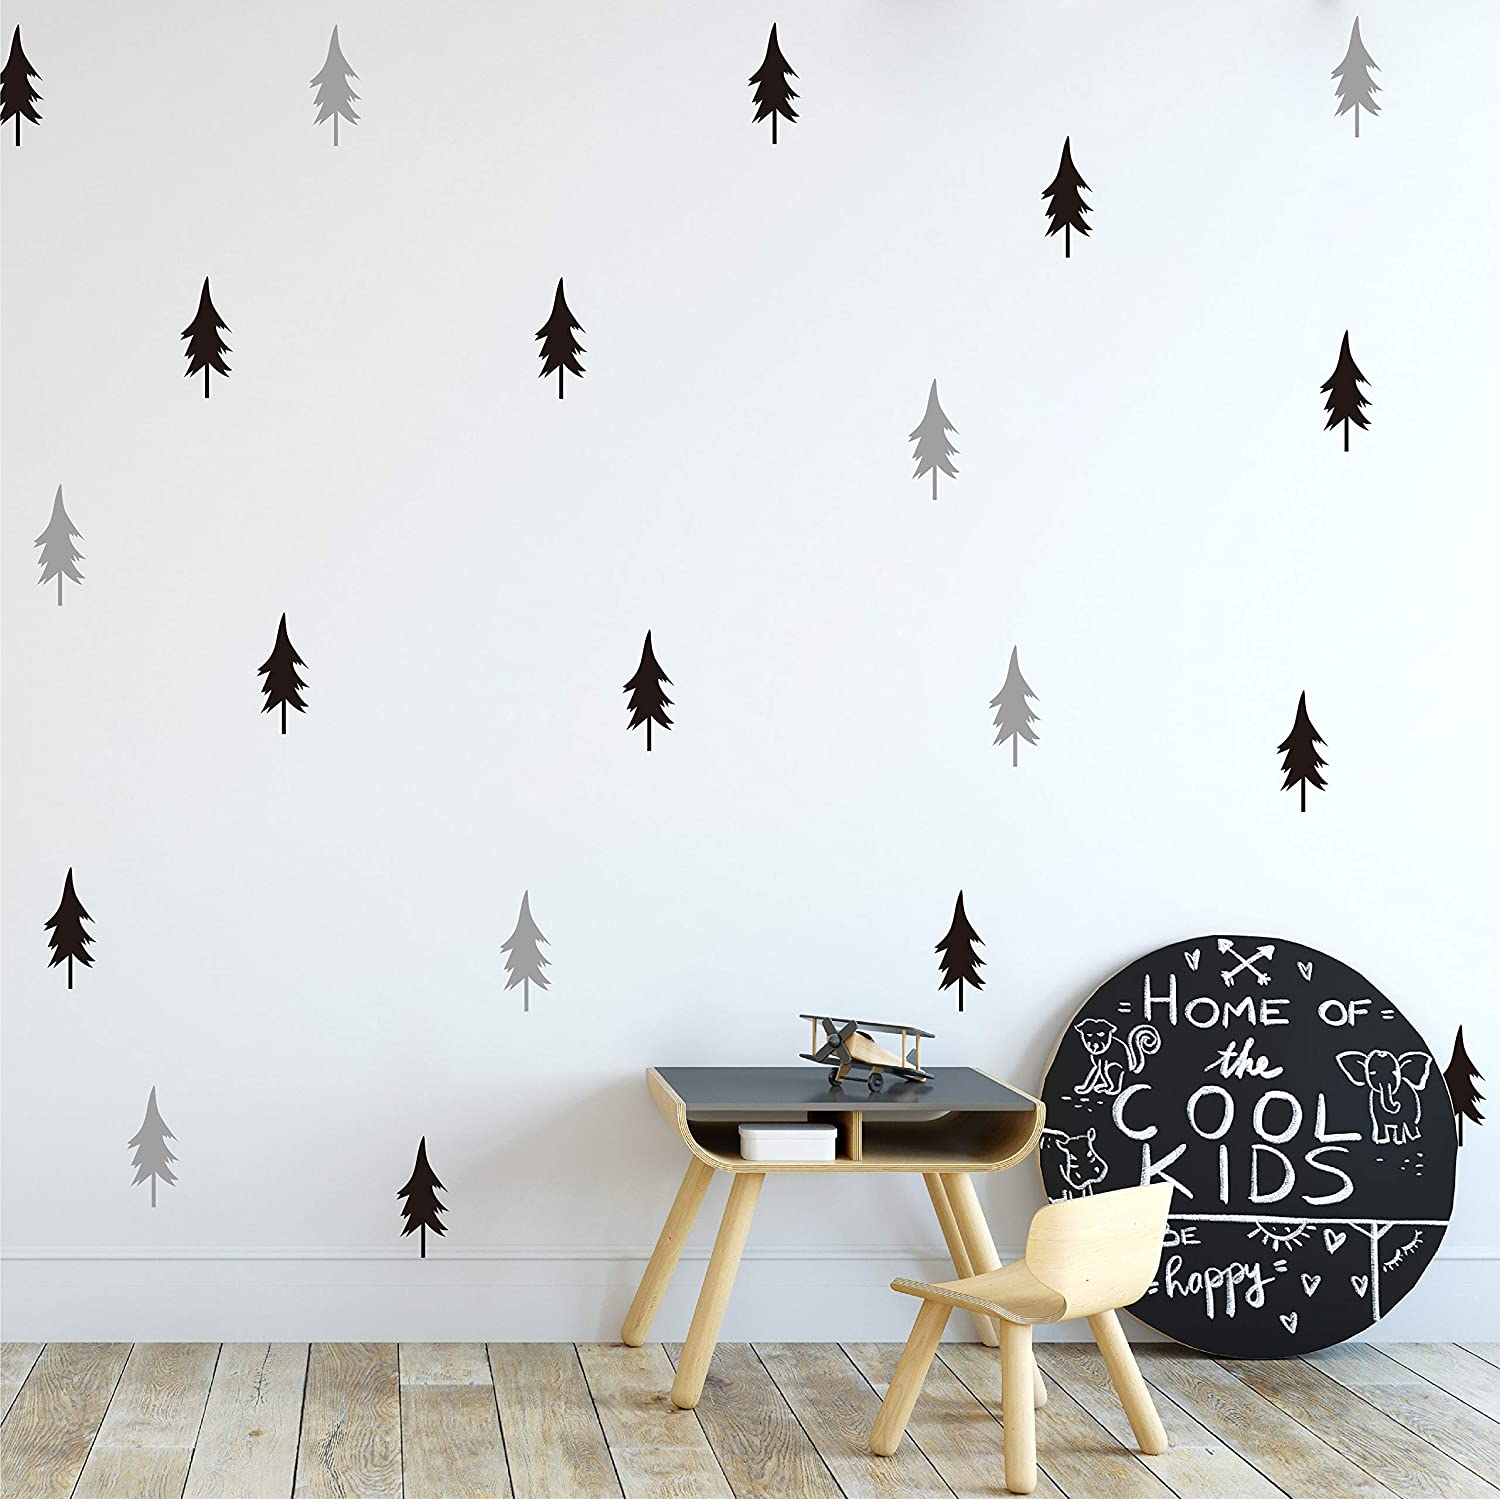 Melissalove 40pcs/Set Large Tree Wall Stickers for Kids Room,Nordic Pine Tree Wall Decals Baby Nursery DIY Stickers JW581 (Black+Light Grey)